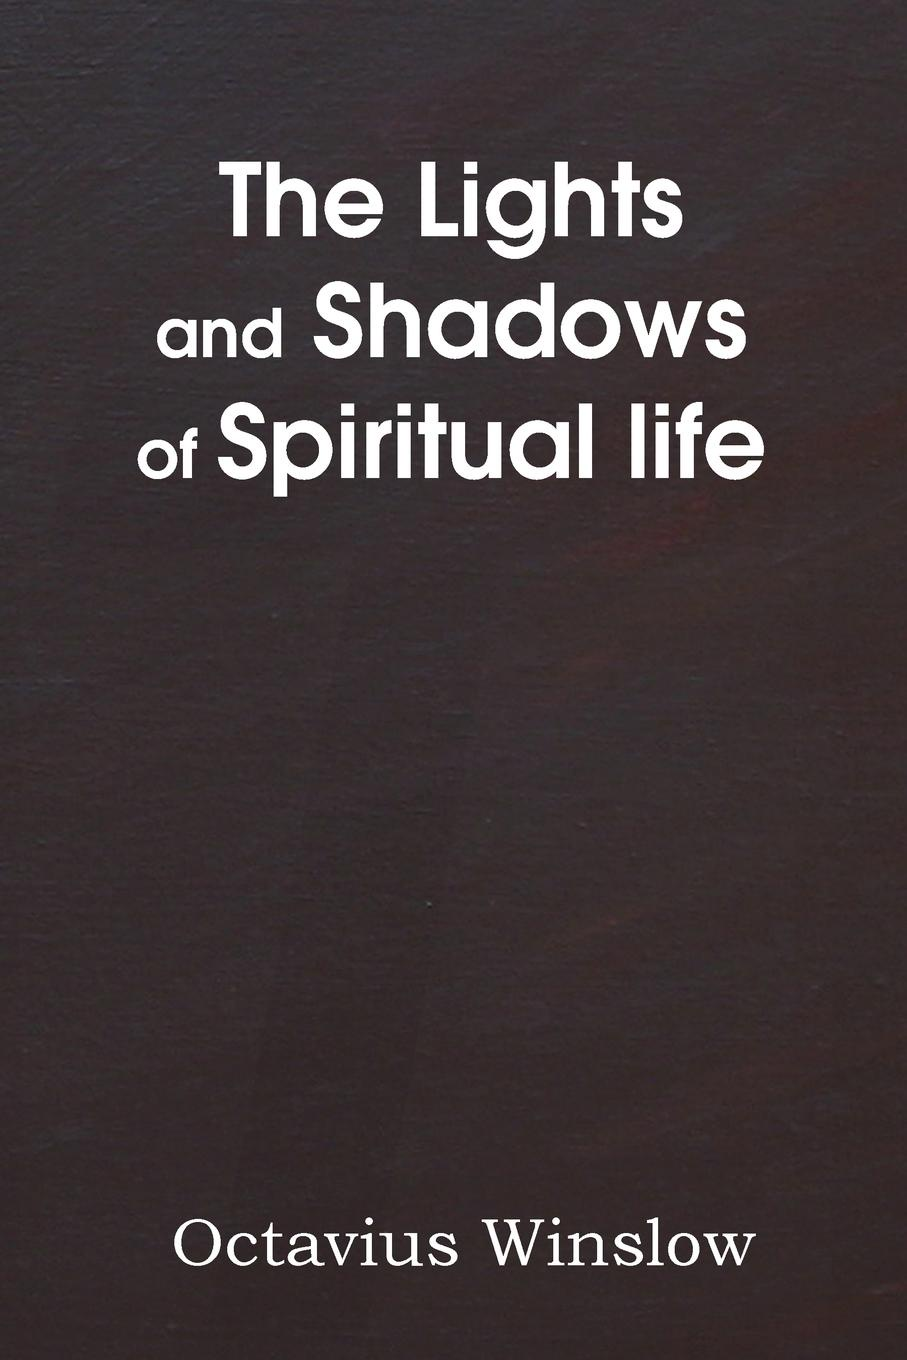 Octavius Winslow The Lights and Shadows of Spiritual Life james caleb mcintosh the coming crisis and second coming of christ in the spring of 1884 microform